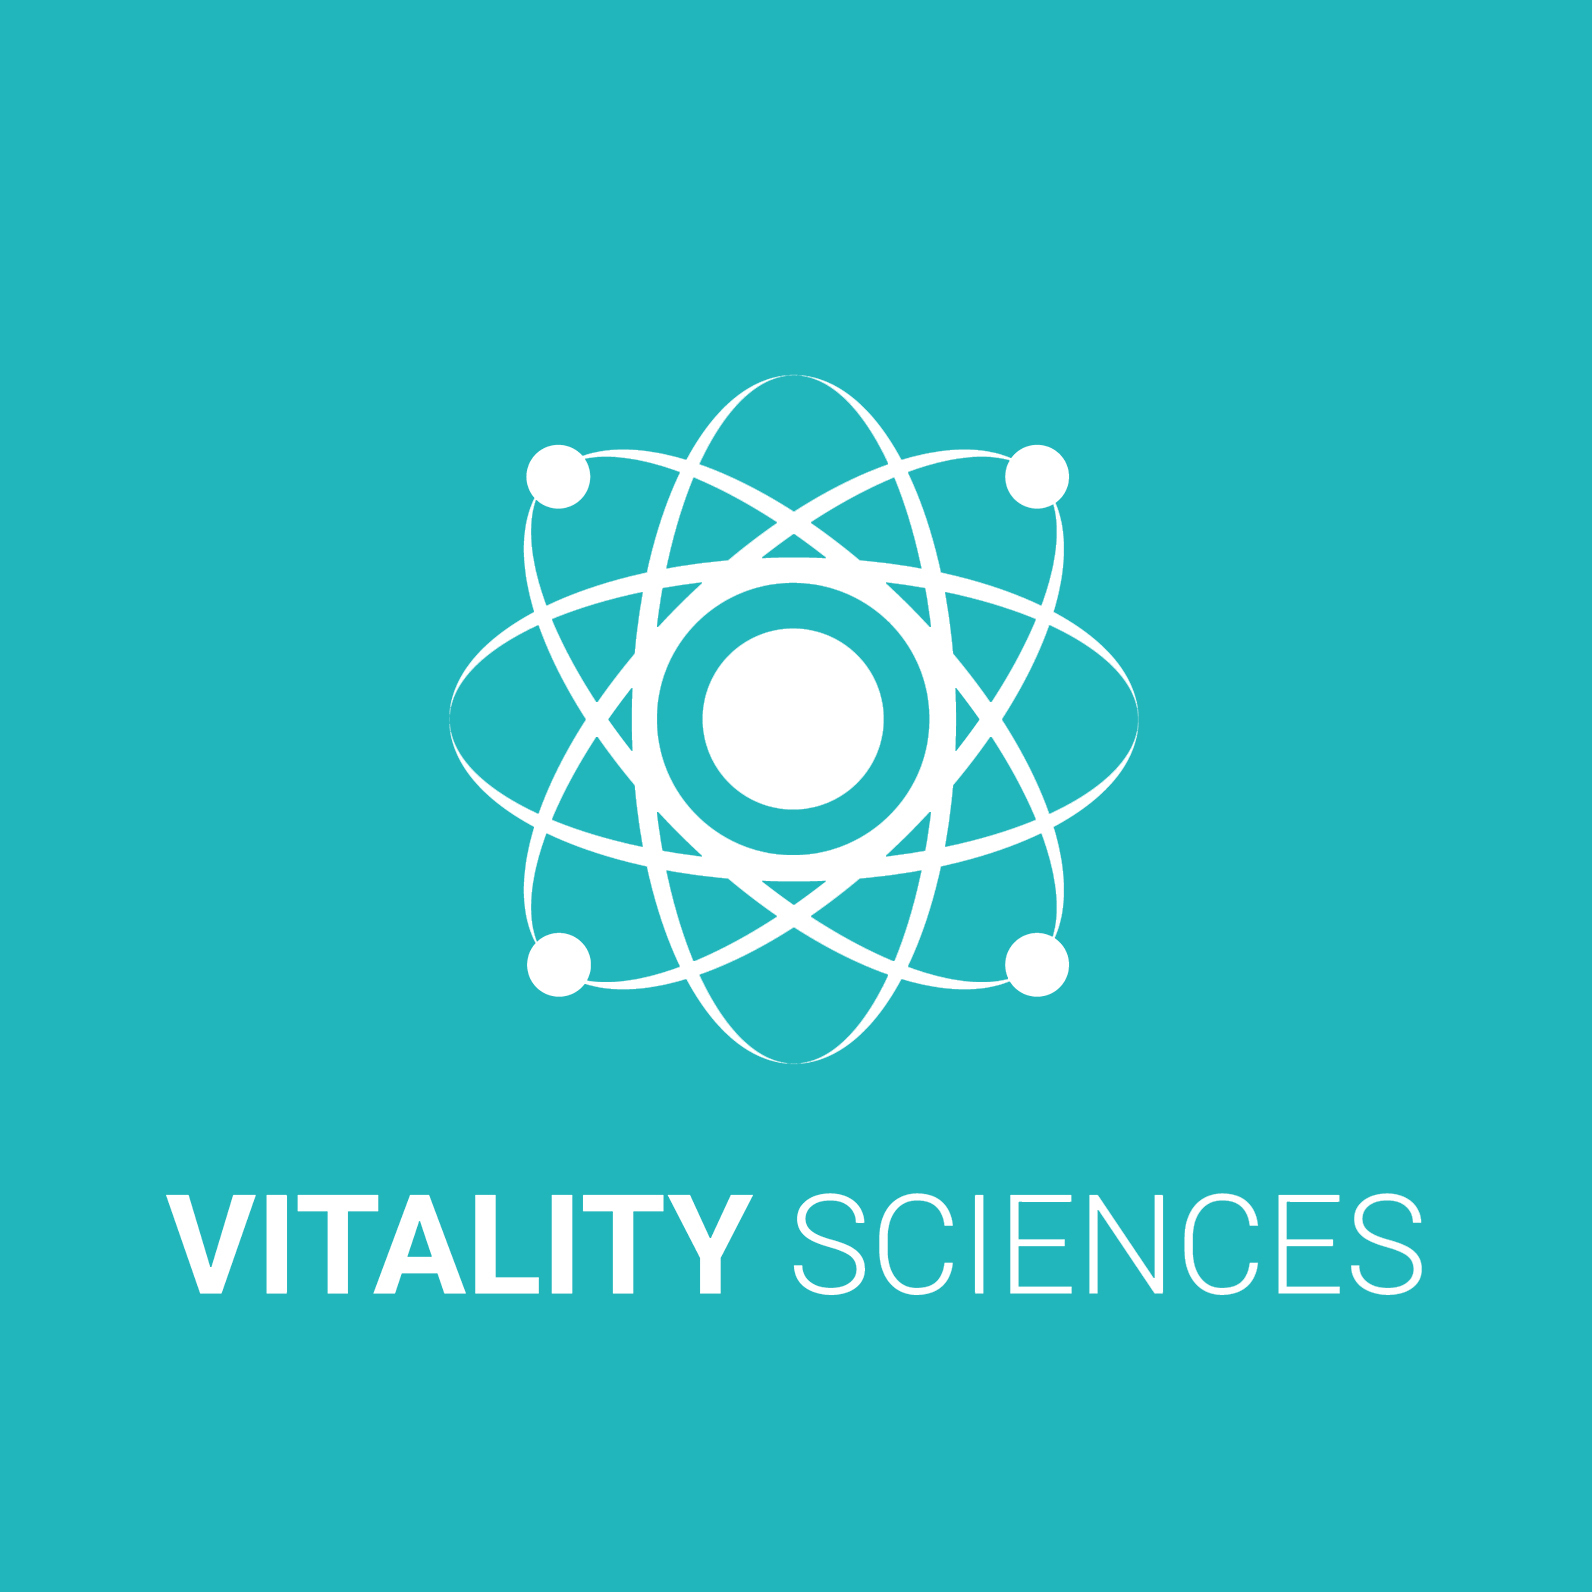 Vitality Sciences Expands Brand And Opens New Atlanta Therapy Clinic